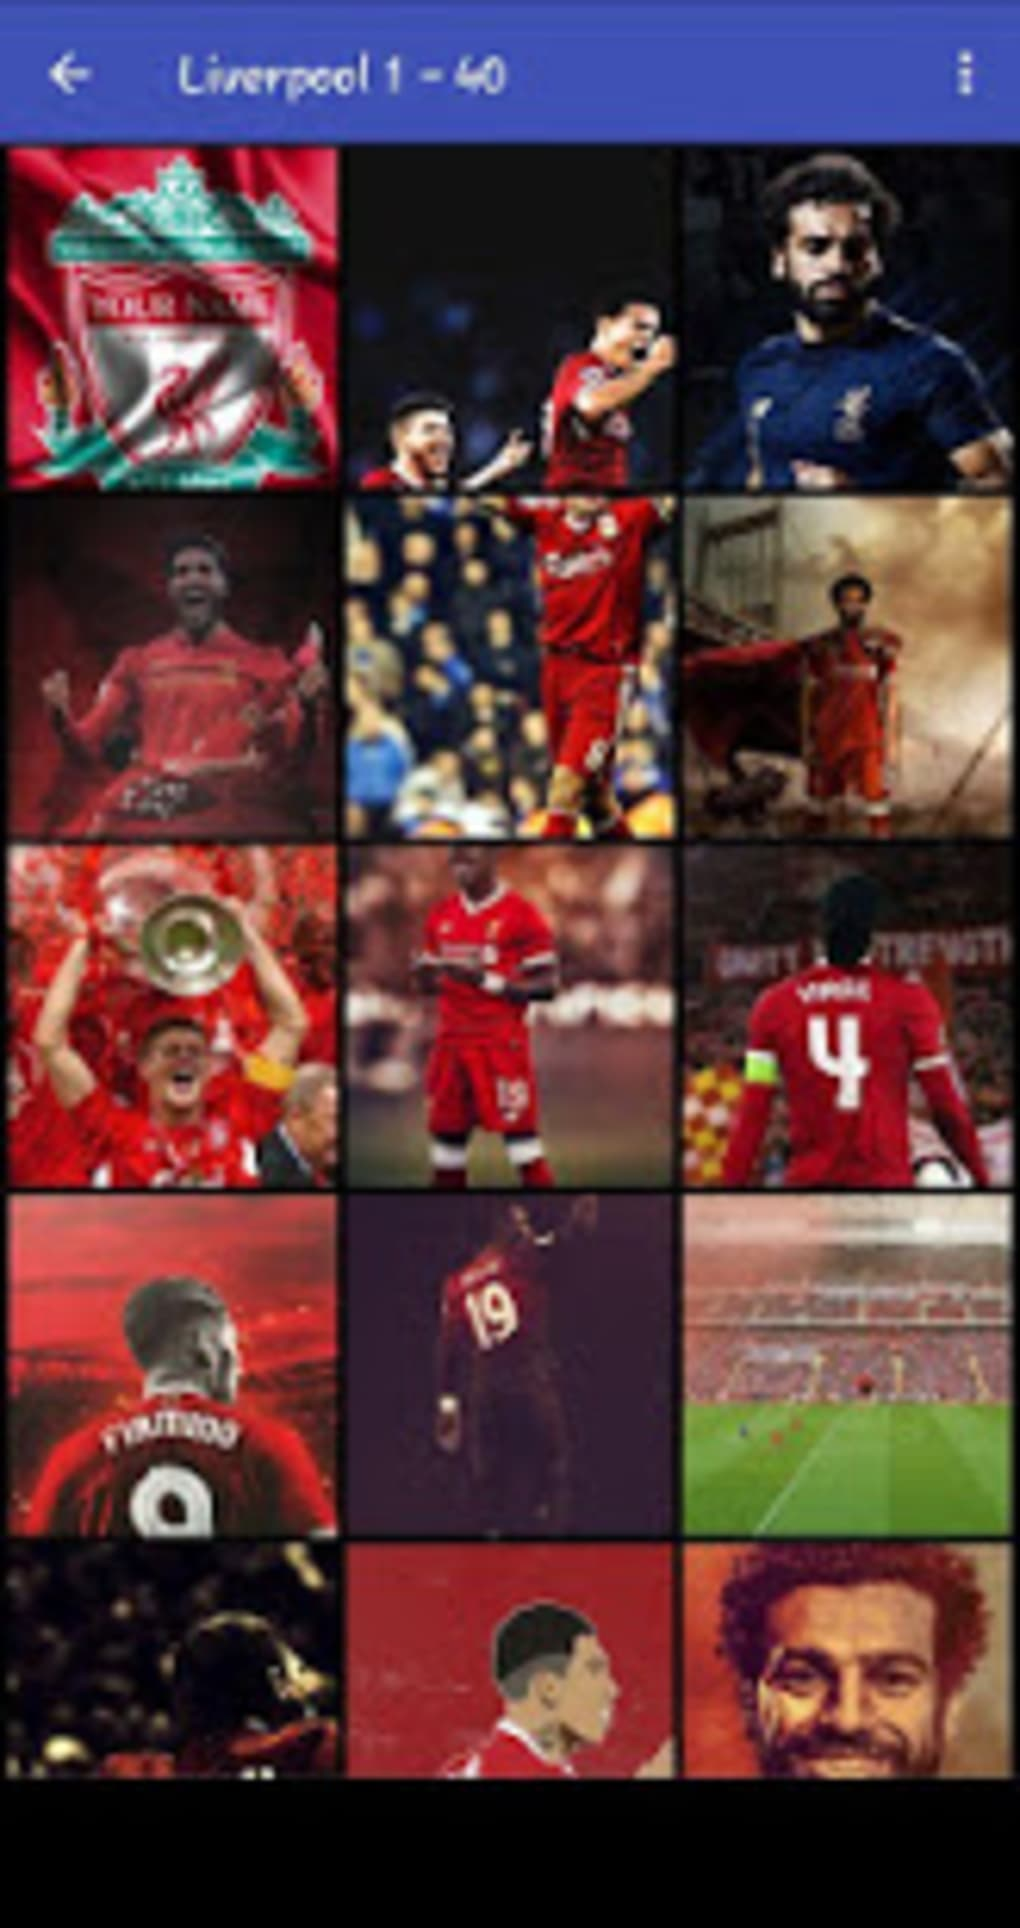 Liverpool Wallpaper 2019 Liverpool